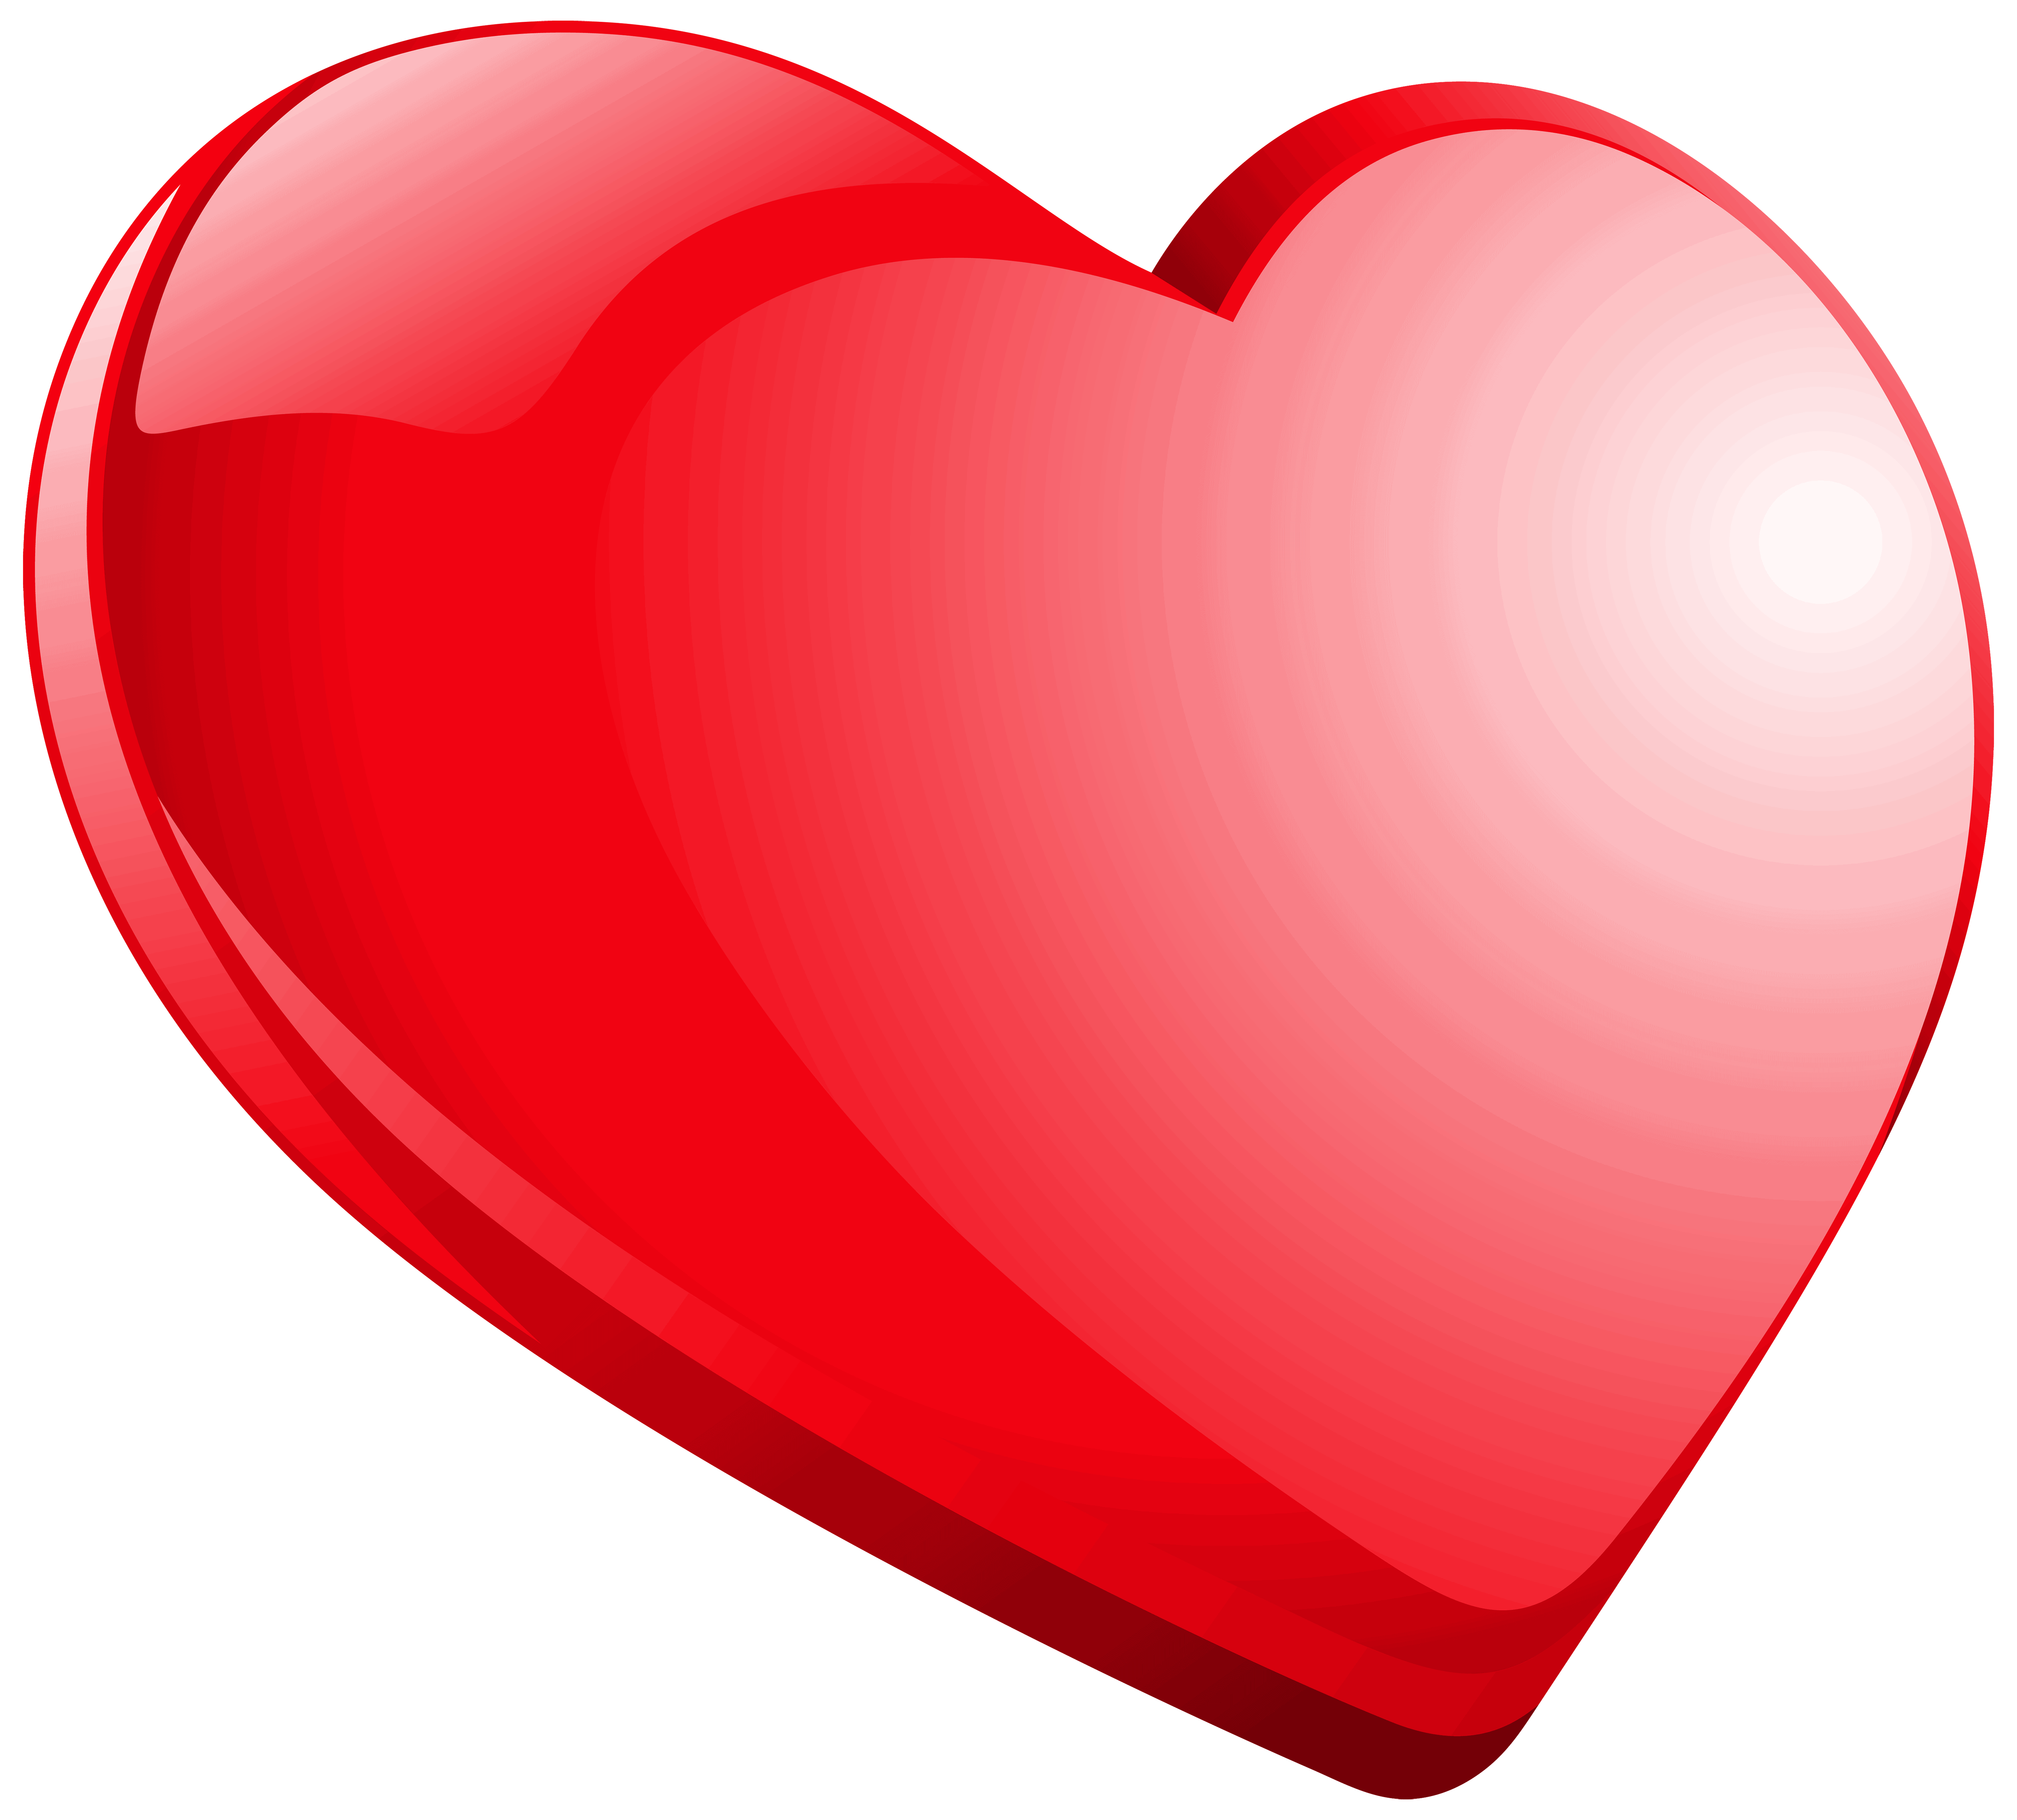 Png . Clipart heart red